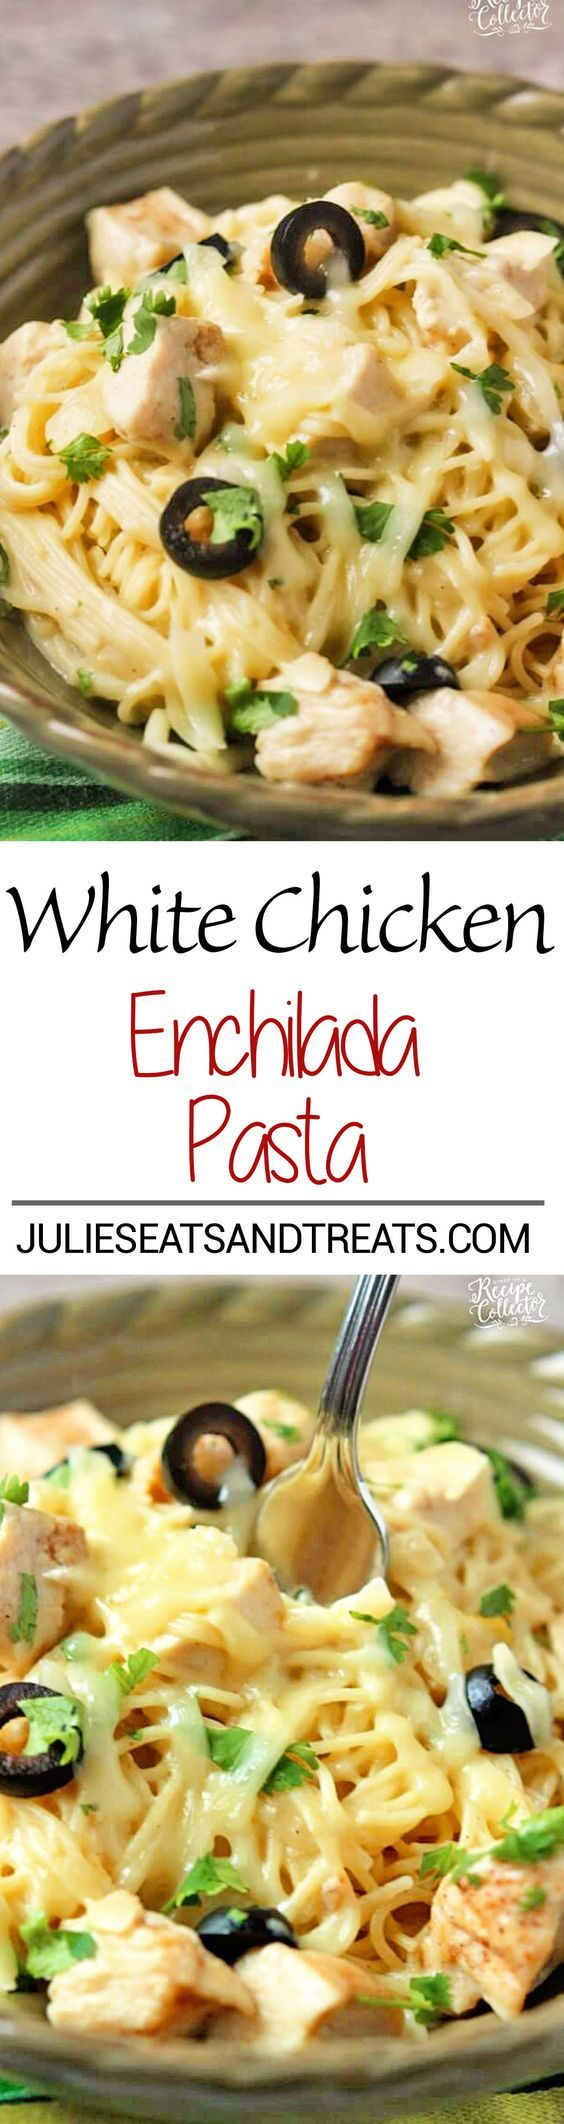 White Chicken Enchilada Pasta Recipe – A delicious pasta filled with all the wonderful flavor of white chicken enchiladas with the help of green chilies, a little sour cream, and melted jack cheese! (Chili Recipes With Noodles)